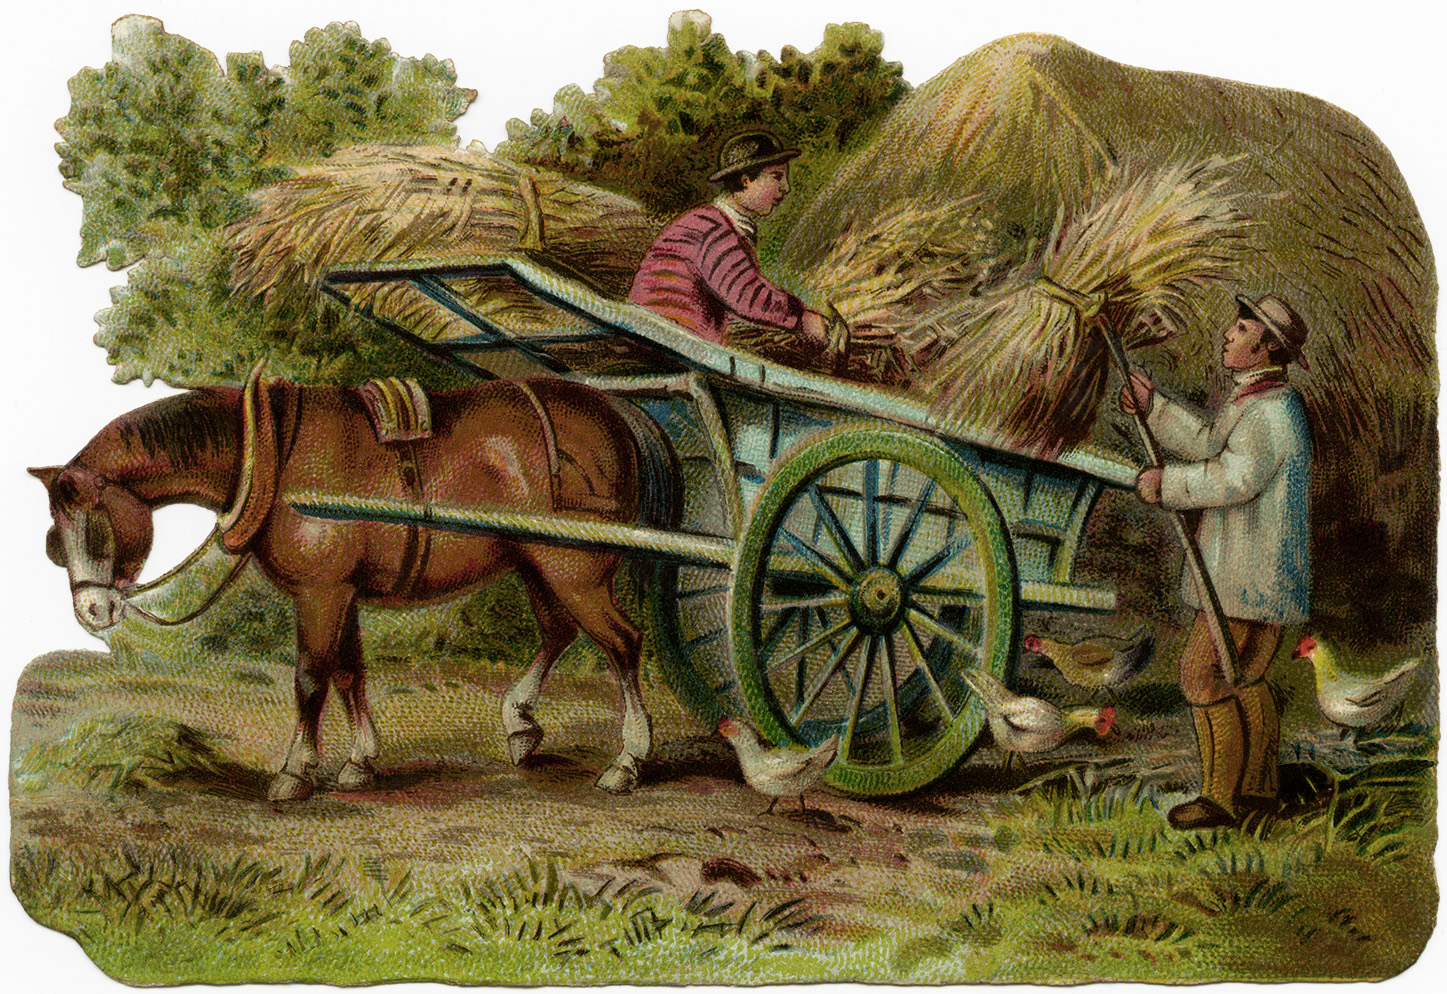 Antique farmer clipart image stock Free Vintage Farm Cliparts, Download Free Clip Art, Free Clip Art on ... image stock